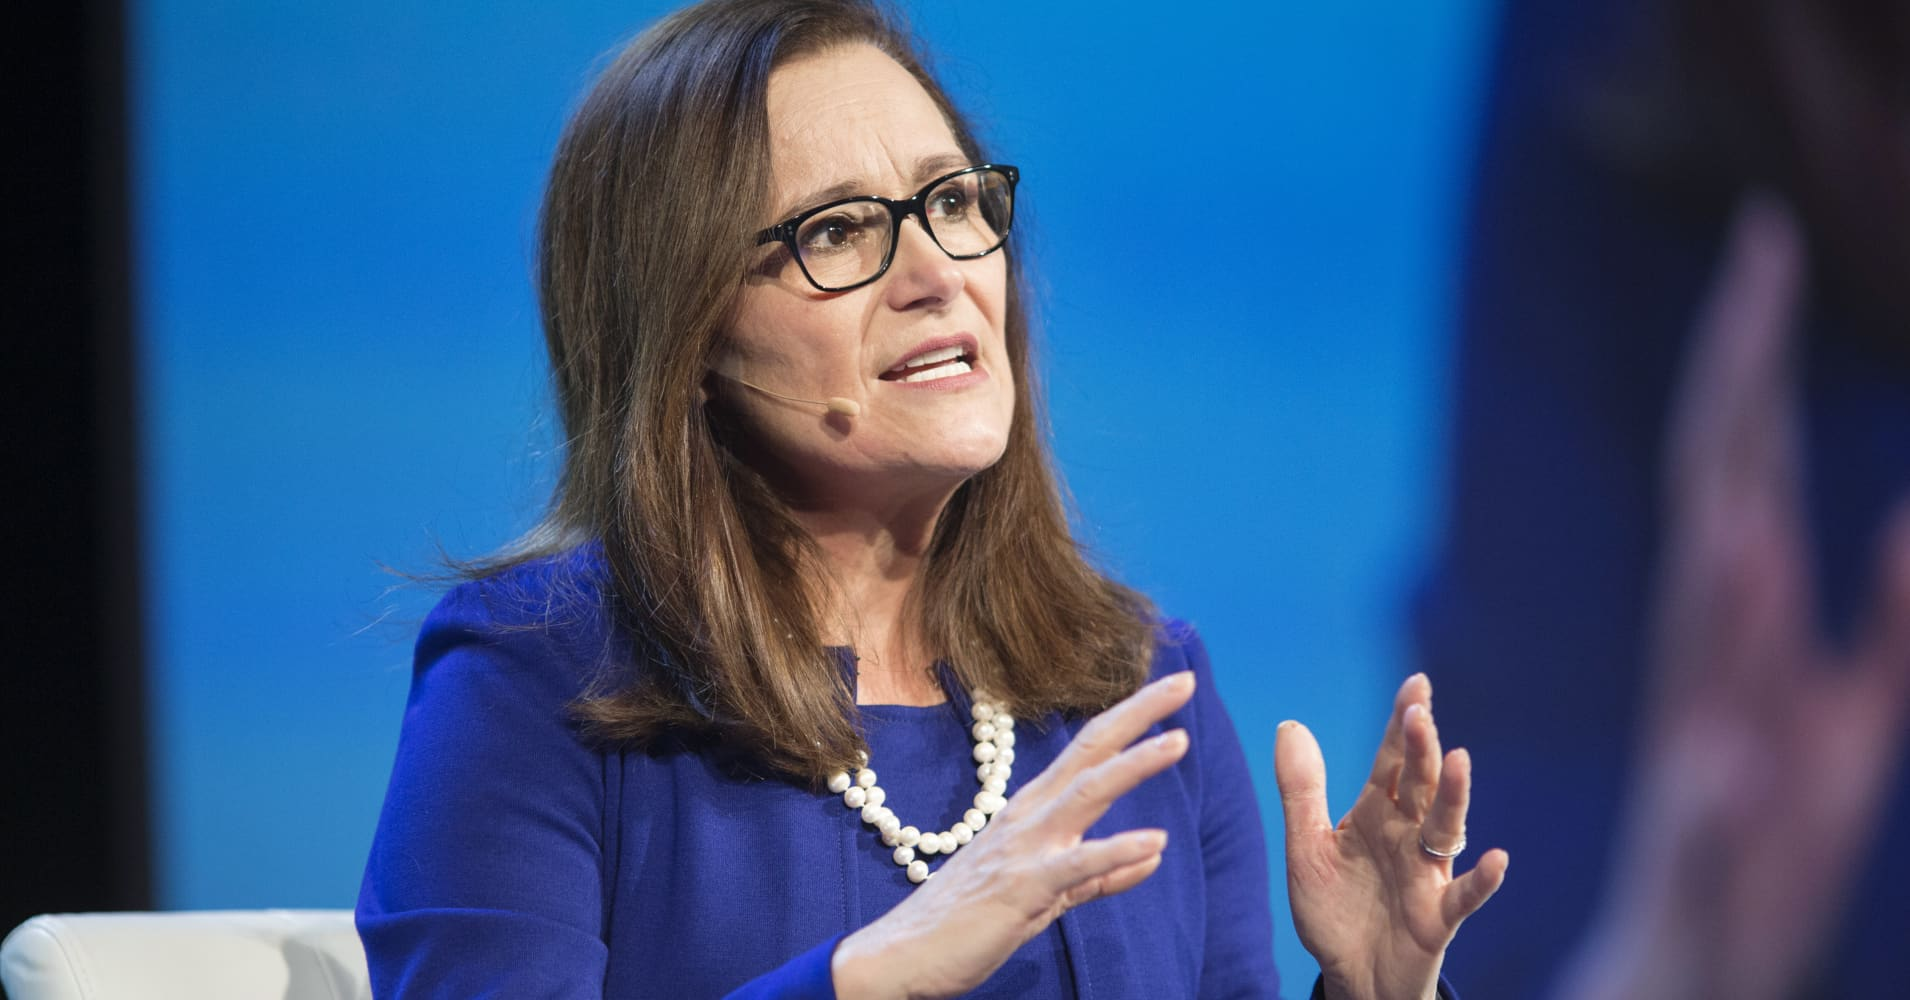 Geisha Williams, president and chief executive officer of PG&E Corp., speaks during the 2018 CERAWeek by IHS Markit conference in Houston, Texas, on Thursday, March 8, 2018.